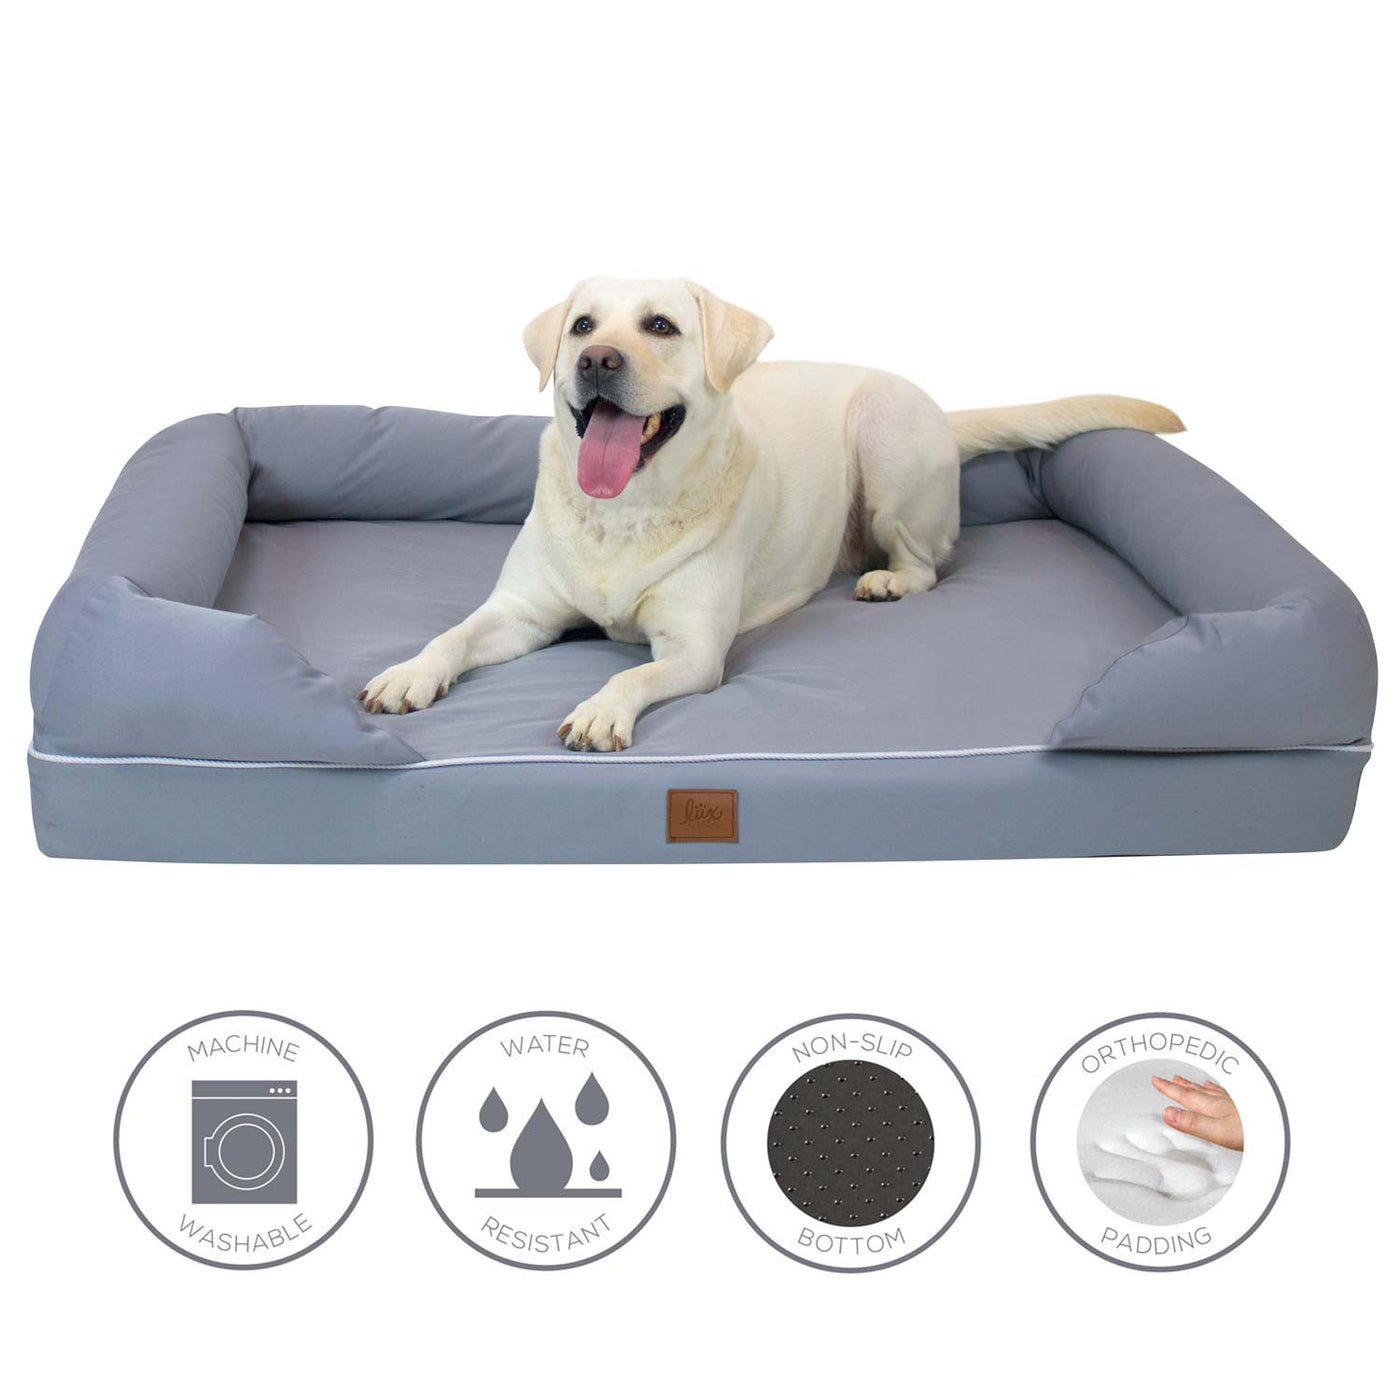 Orthopedic Dog Bed Lounger with Padded Backrest – Frontpet